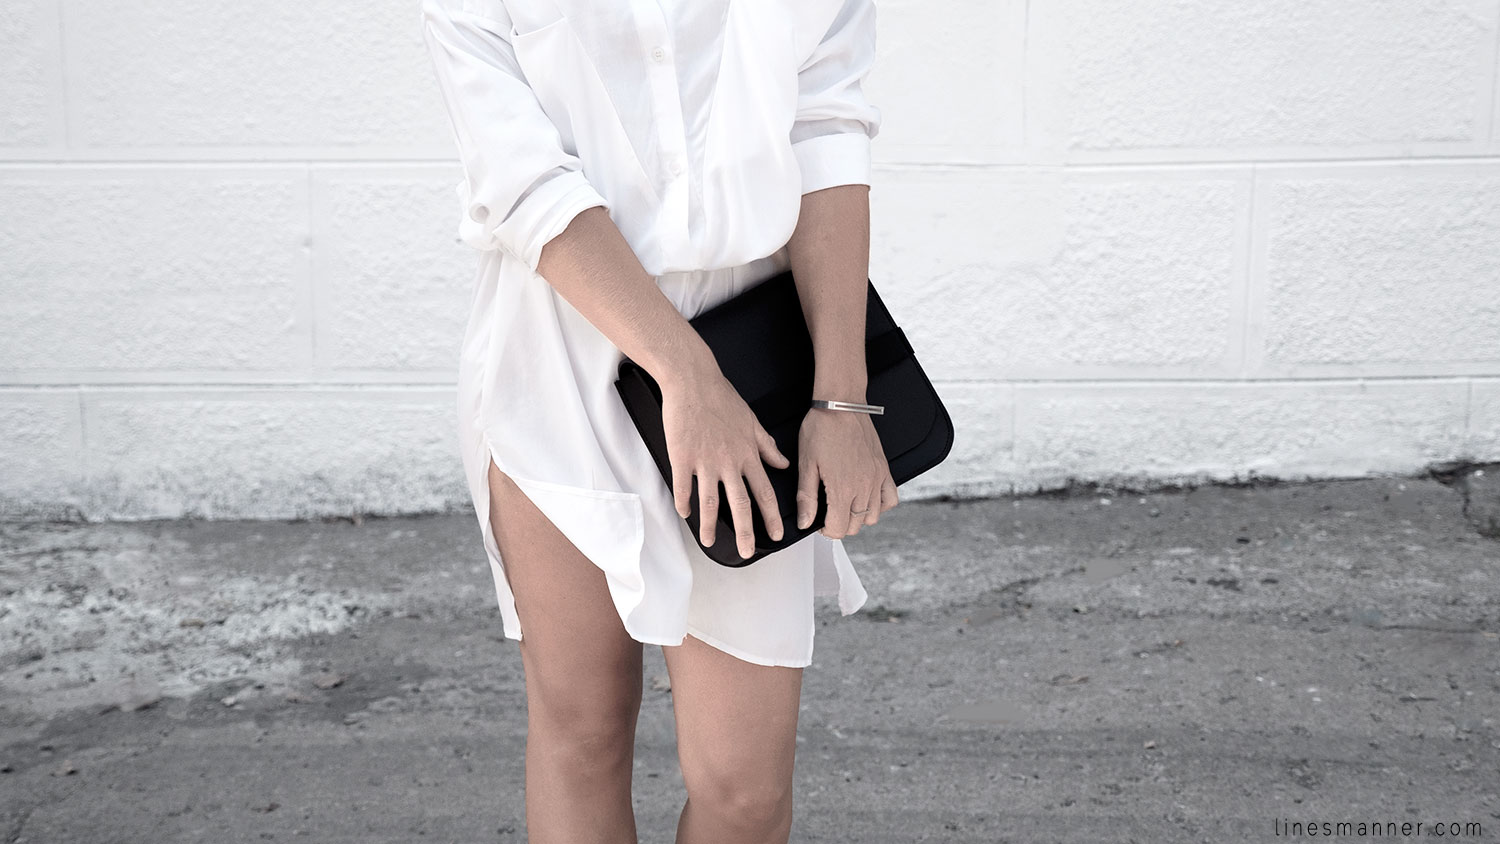 Lines-Manner-Whiteout-Fashion-Minimal-Clean-Fresh-Brigthly-All_White-Monochrome-Immaculate-Trend-Style-Sleek-Slouchy-Details-White_Shirt-Transeasonal-Dressing-Outfit-1